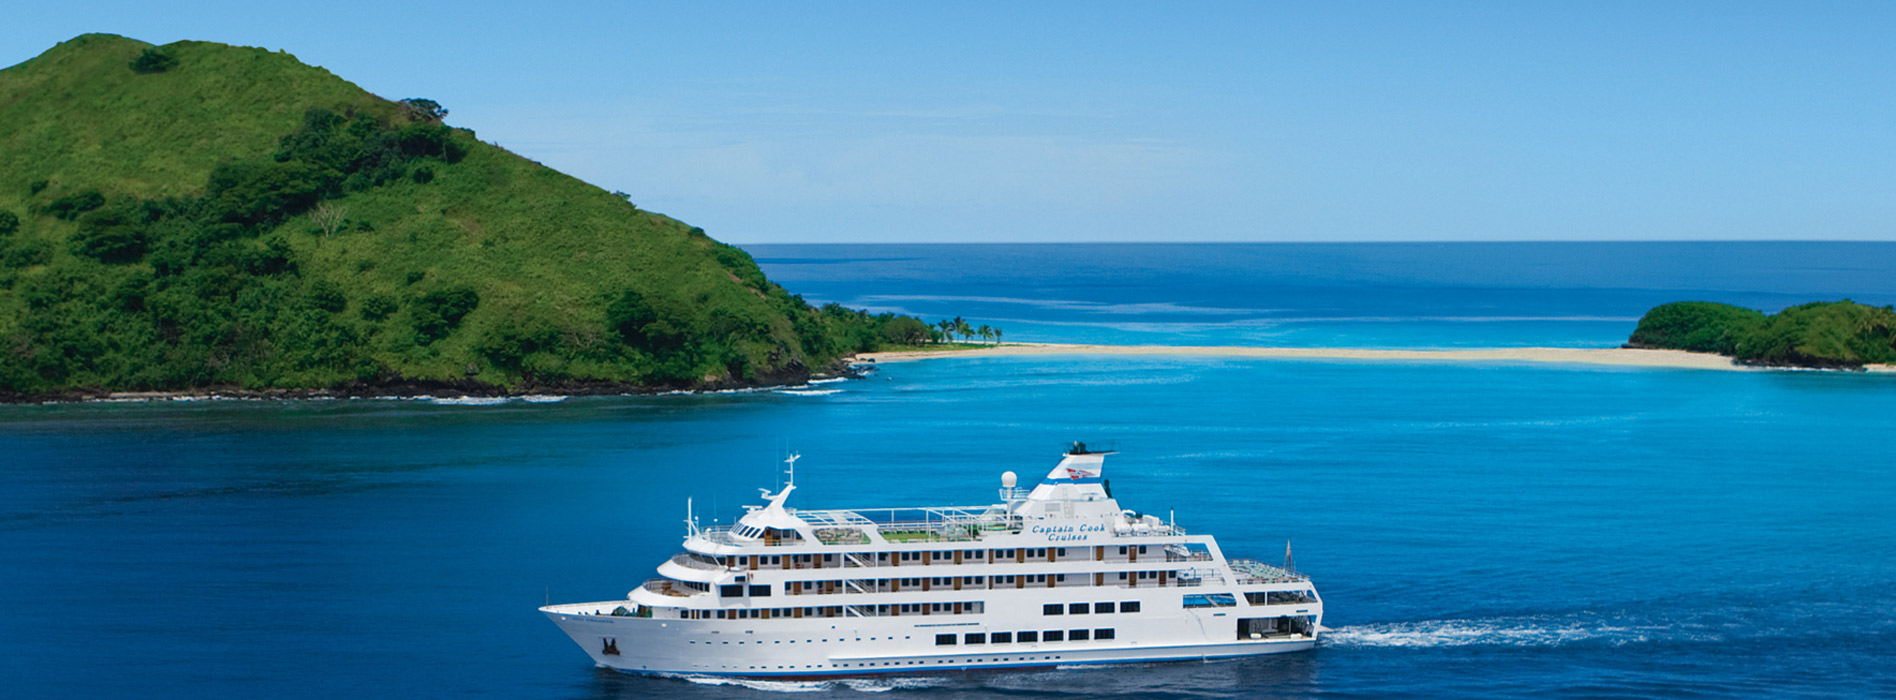 captain cook cruise fiji